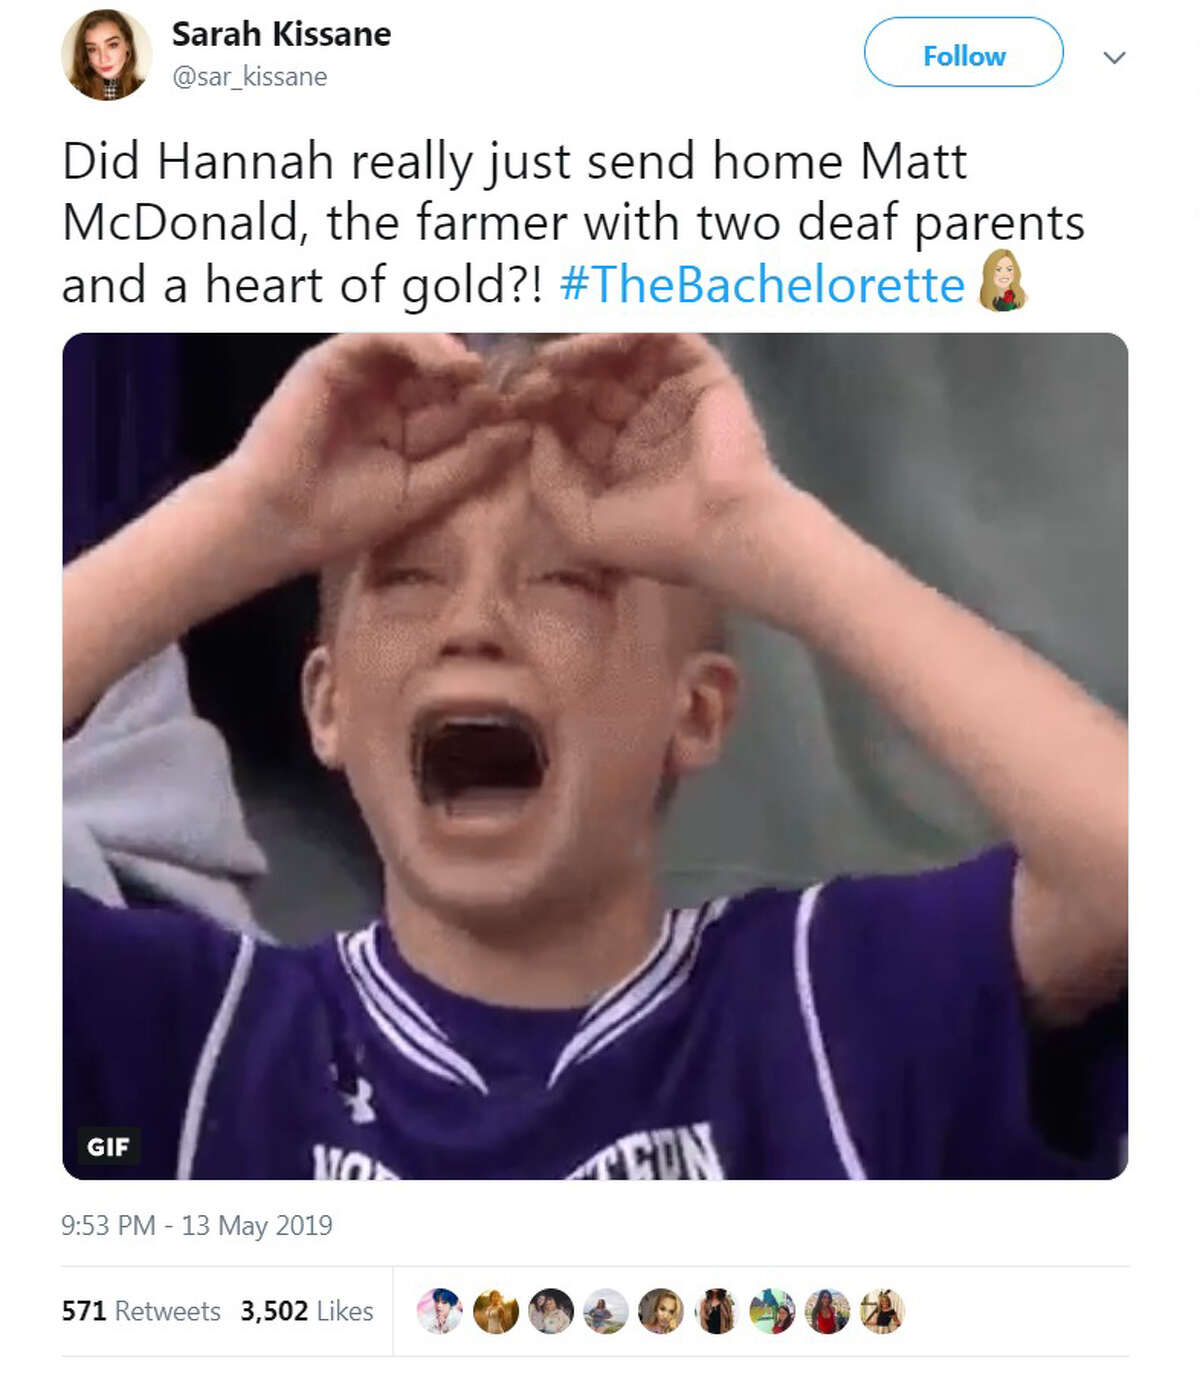 The Bachelorette with Hannah B., debuted on Monday, May 13, 2019, and as always, the Internet had plenty of reactions.